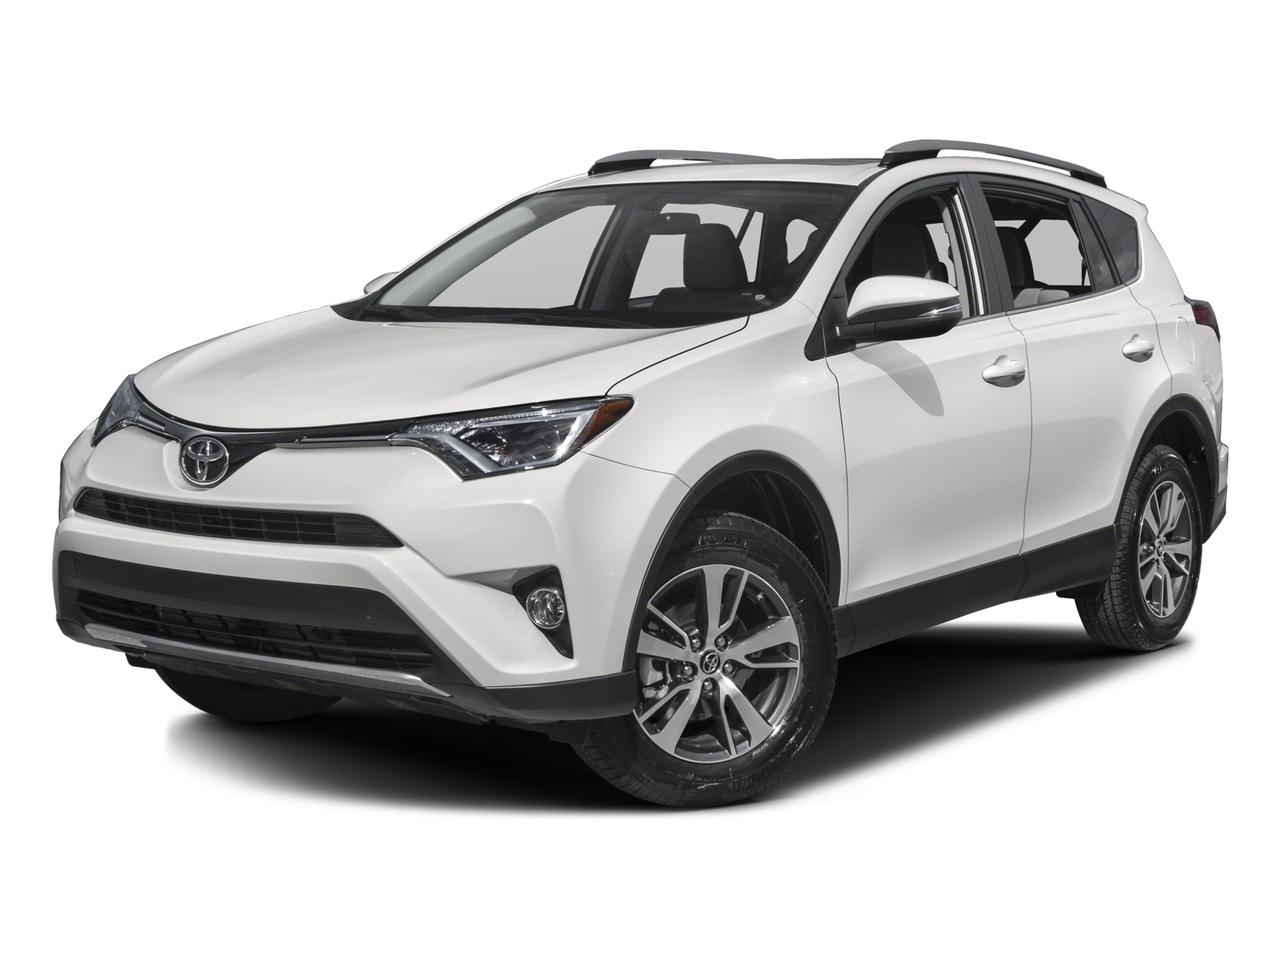 2018 Toyota RAV4 Vehicle Photo in WEST CHESTER, PA 19382-4976